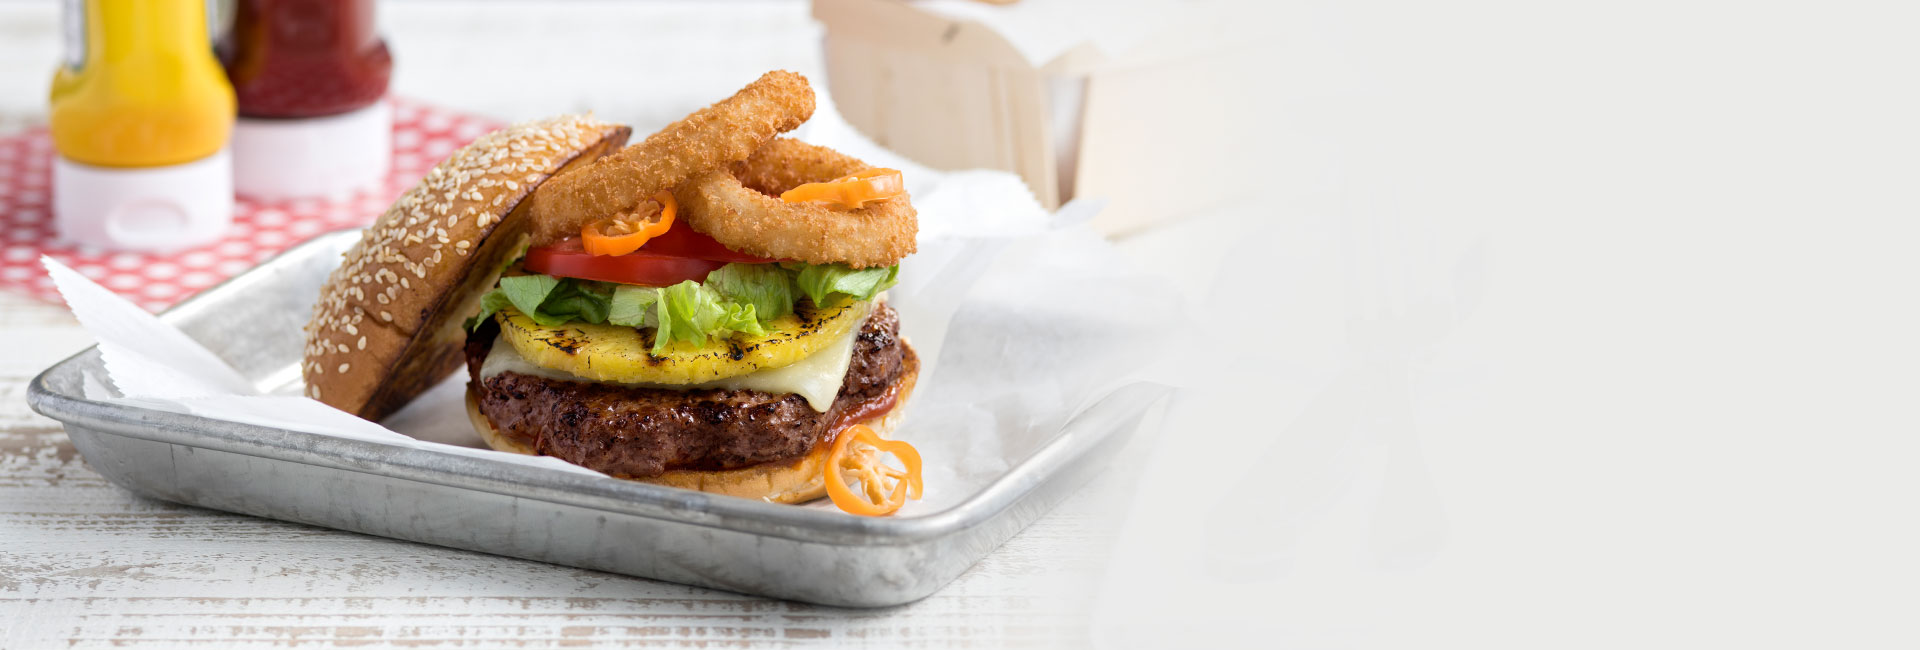 A gourmet burger with a pineapple slice and onion rings, served on a metal plate sits on a wooden table.